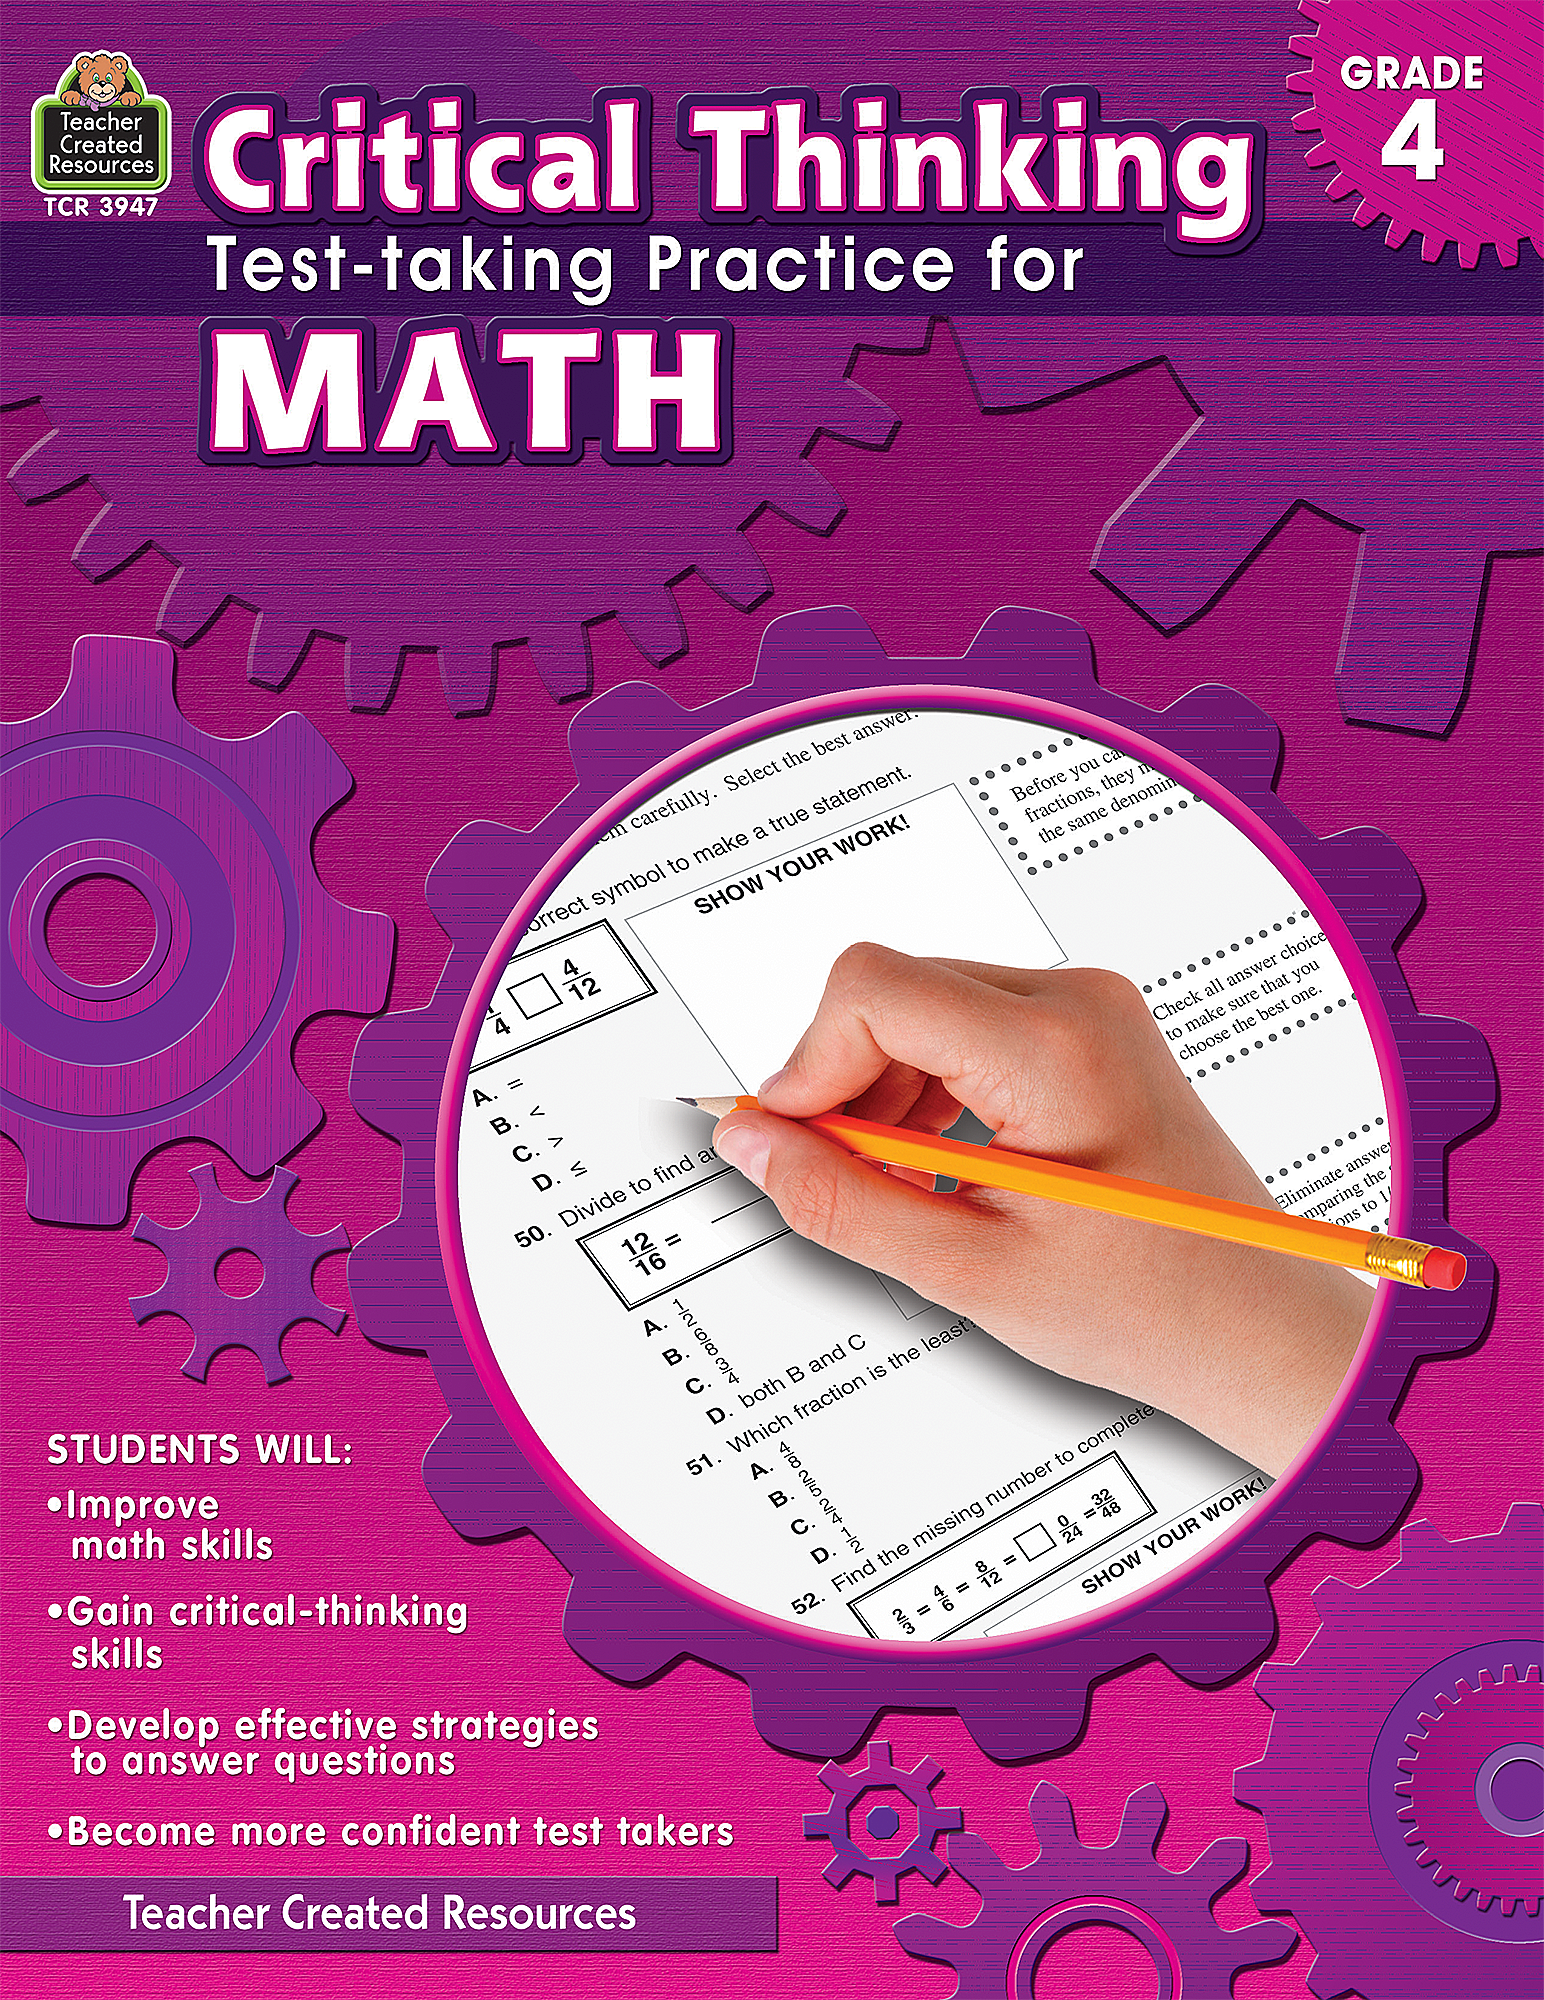 Critical Thinking: Test-taking Practice for Math Grade 4 - TCR3947 ...